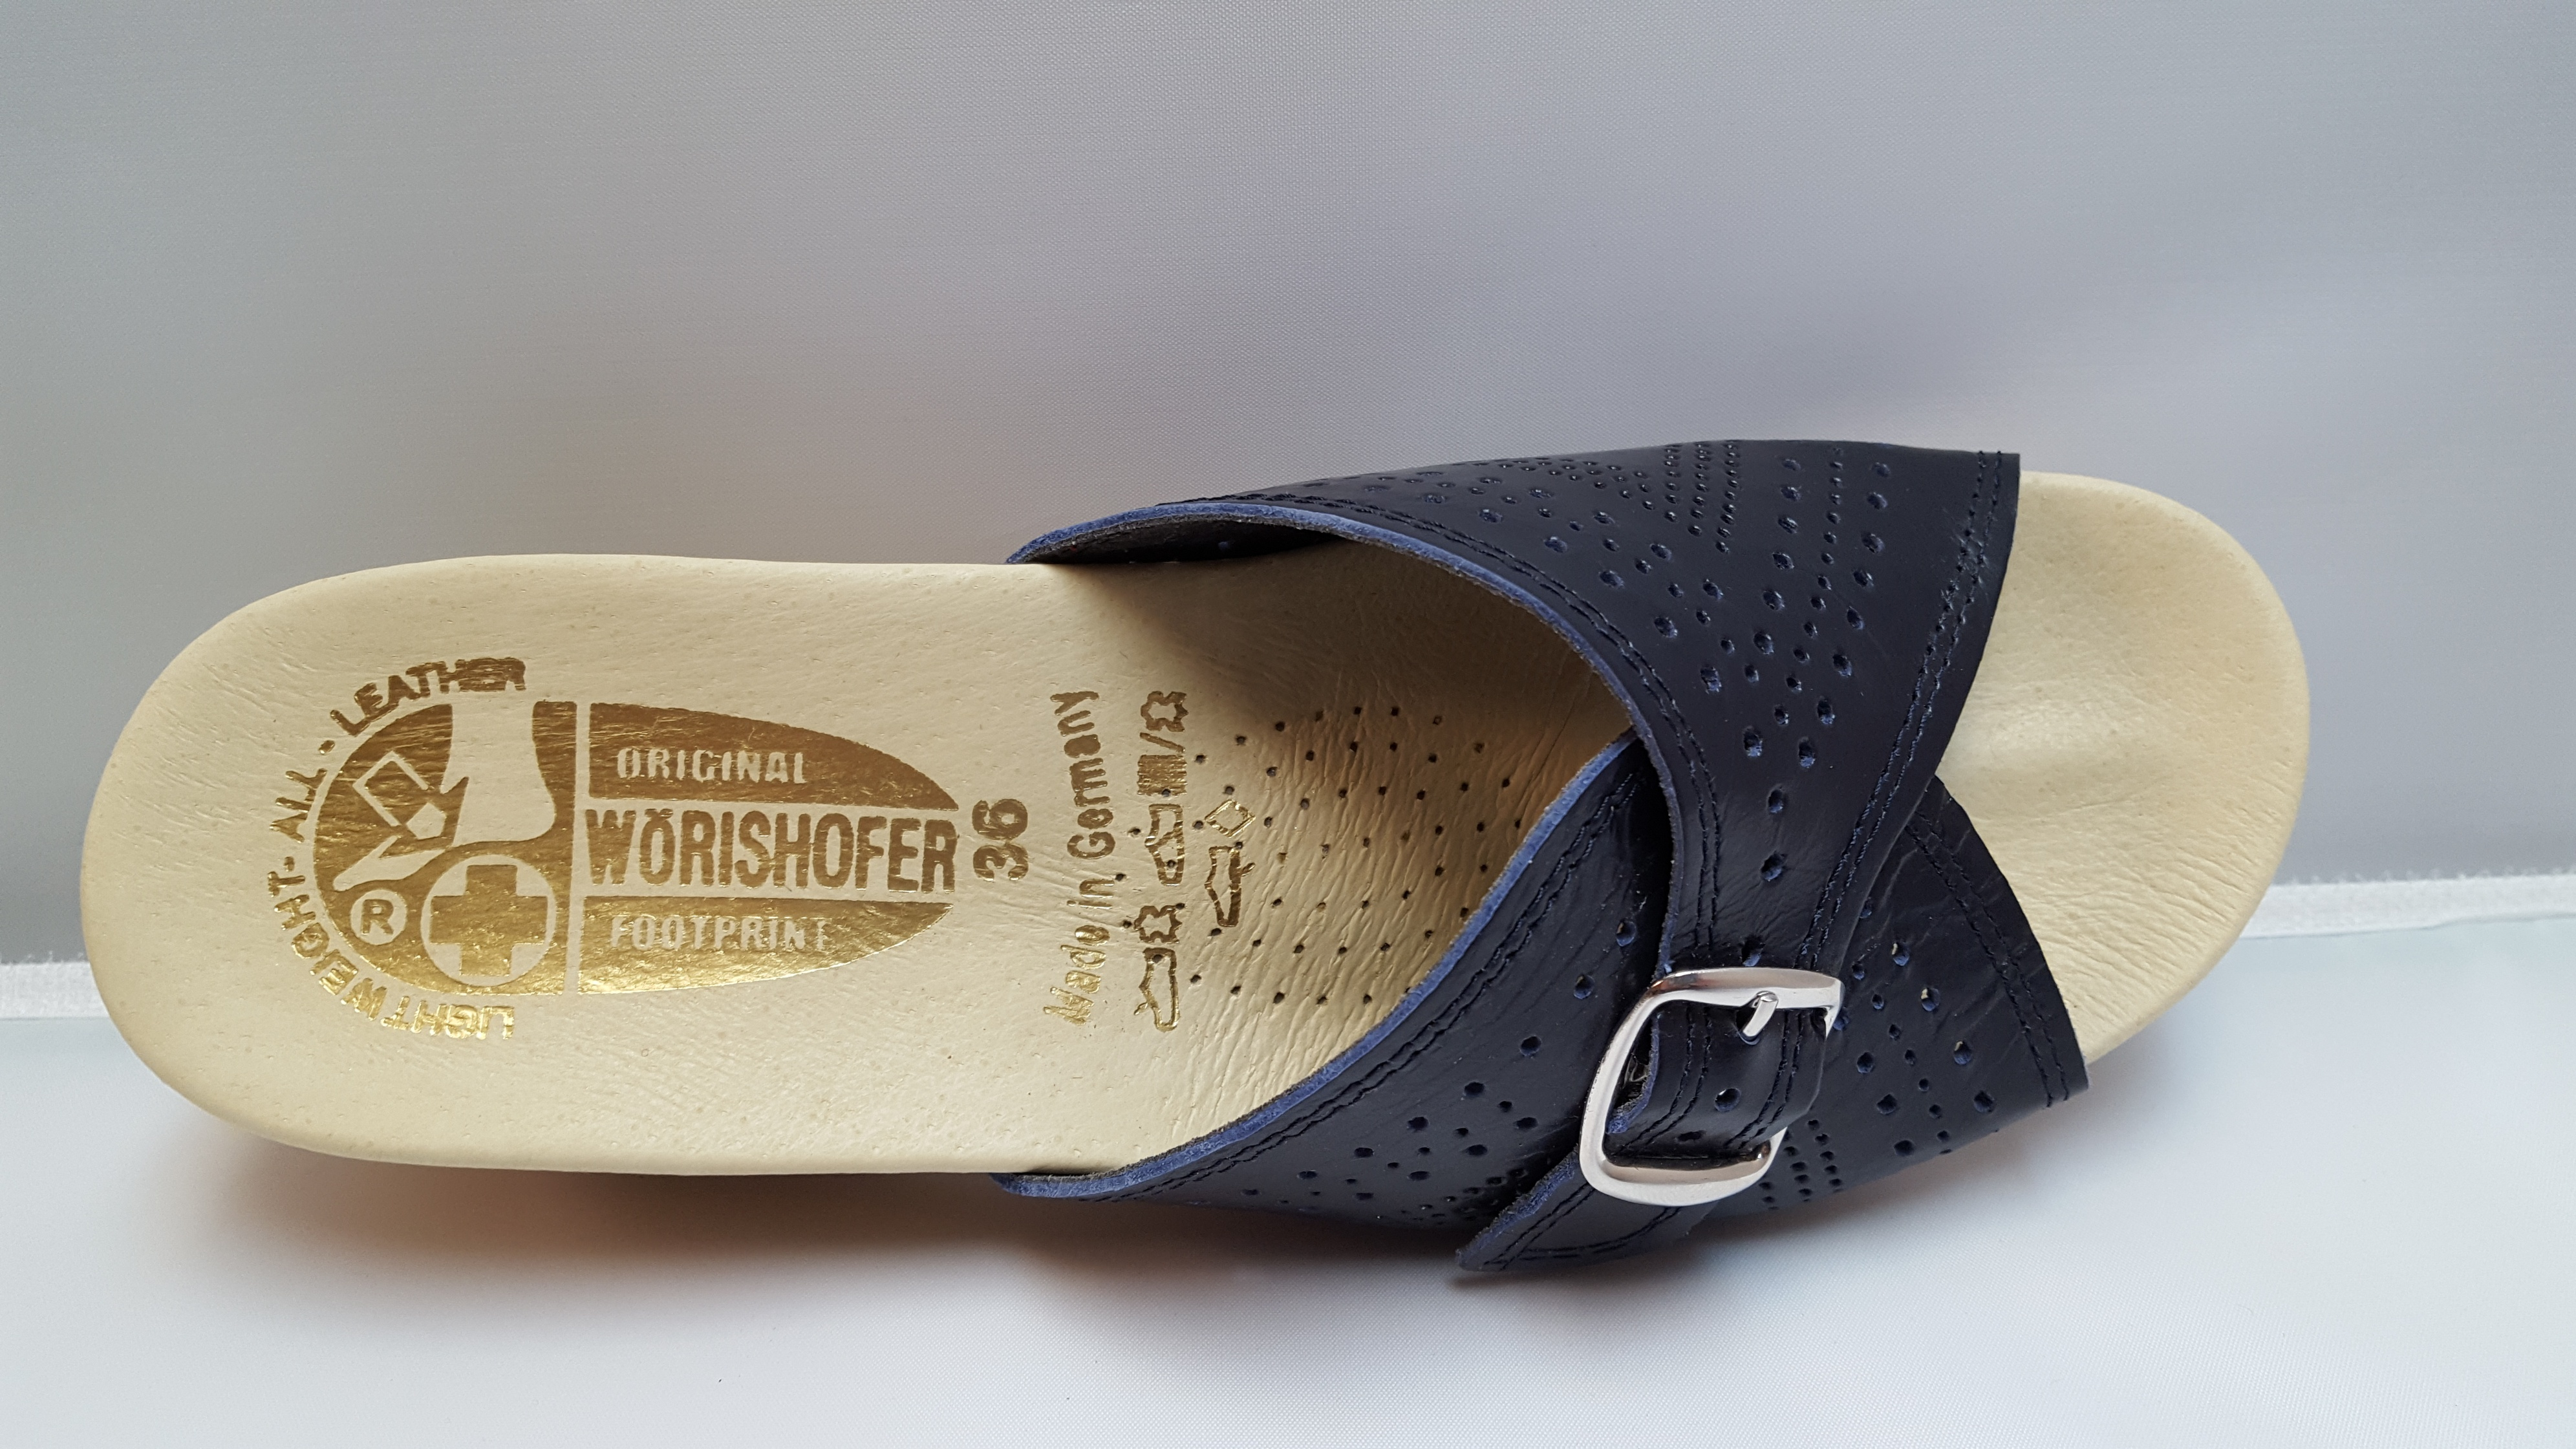 1b94bf356661 Worishofer 251 Women s Navy leather Wedge Slide Sandal - River ...